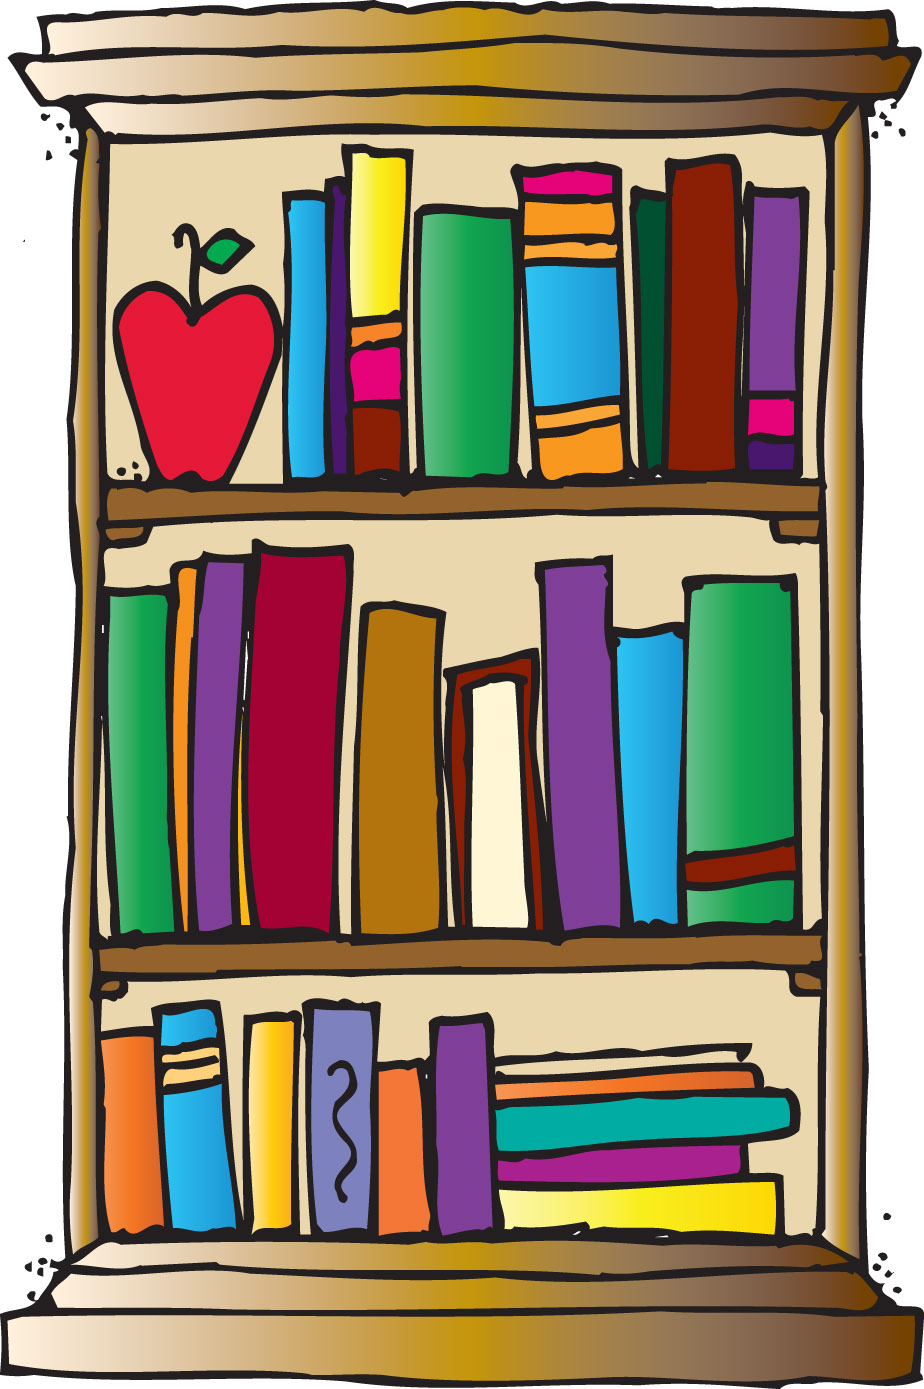 Book case clipart png black and white library Book shelf clip art - ClipartFest png black and white library